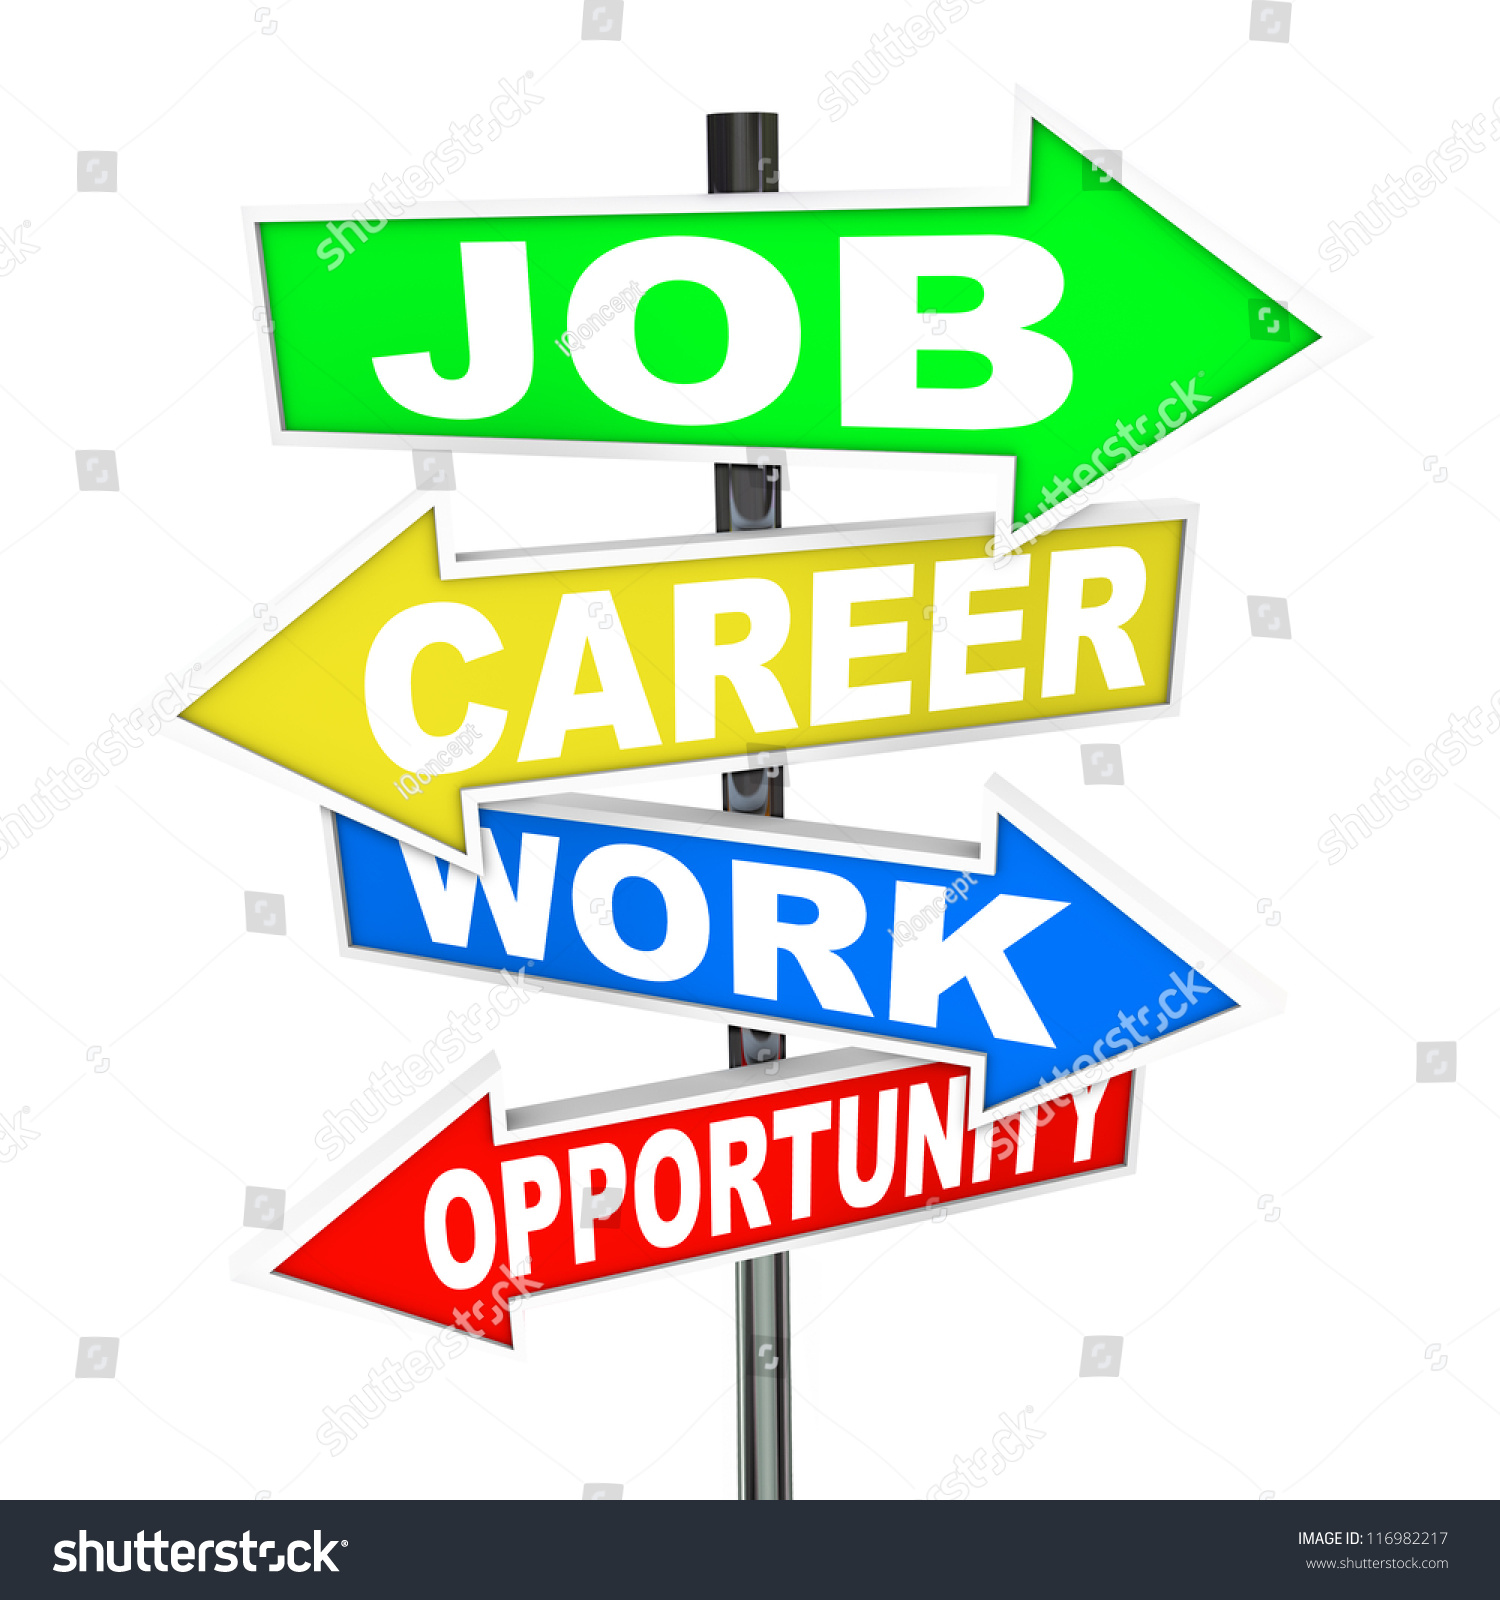 words job career work opportunity on stock illustration  the words job career work and opportunity on colorful road signs arrows pointing